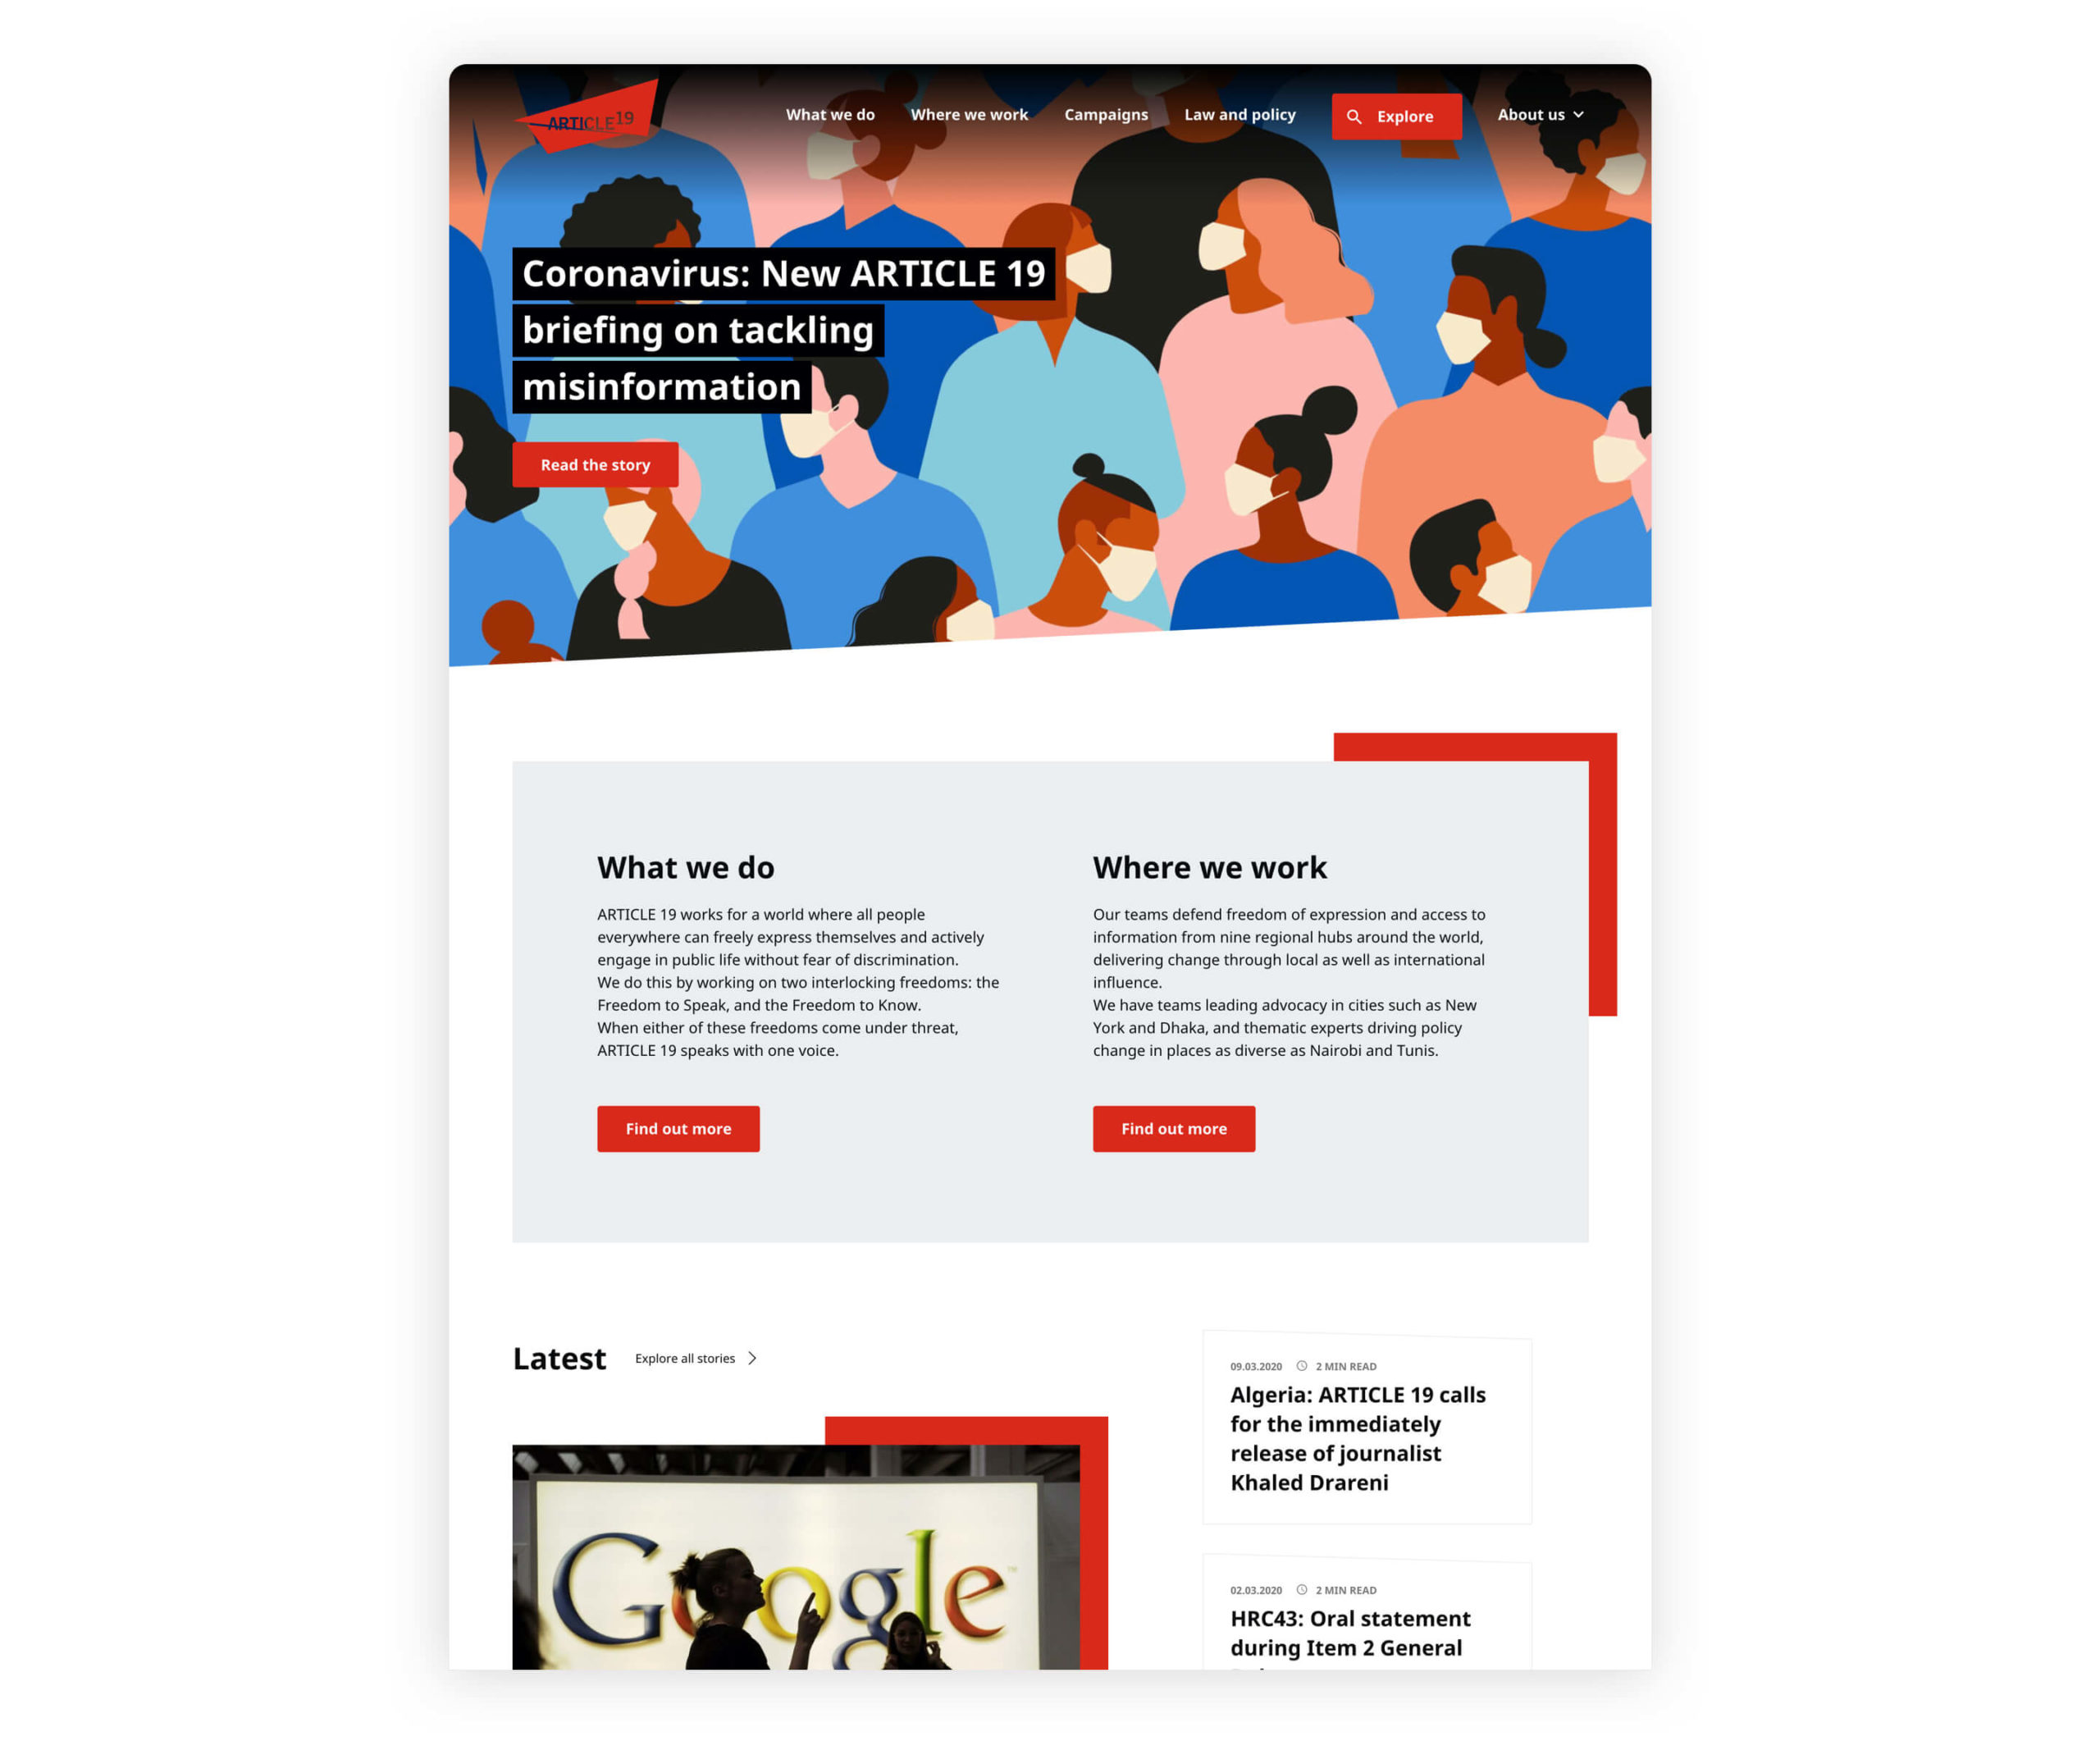 image of article 19 website